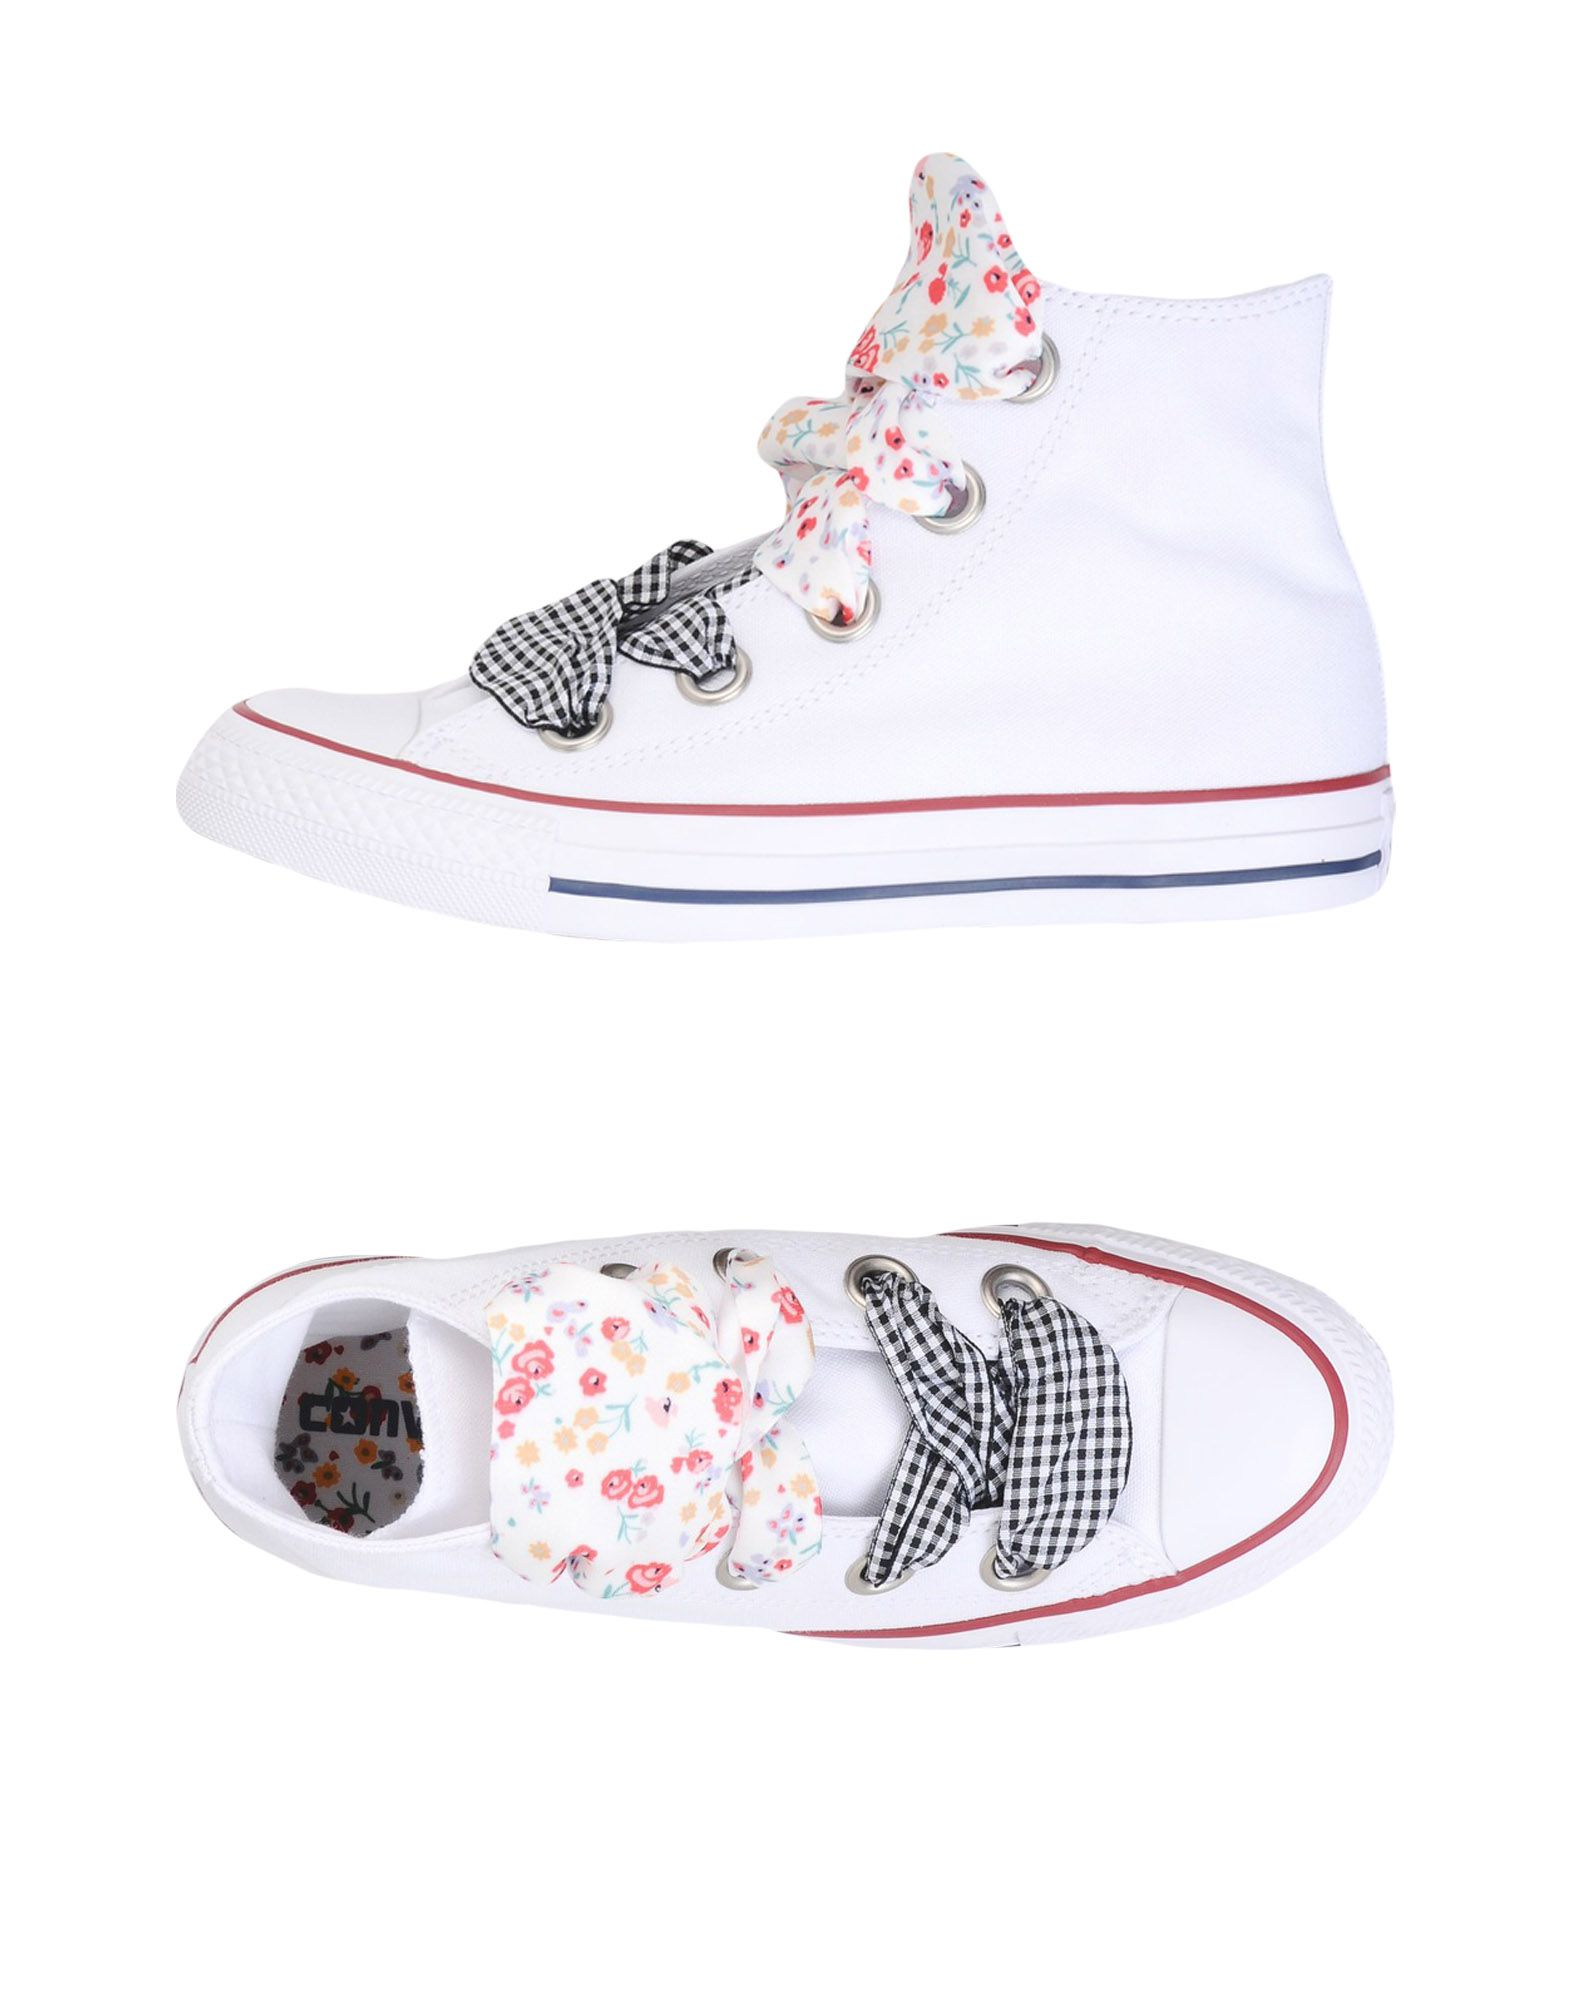 Sneakers Converse All Star Ctas Hi Big Eyelet Flowers Details - Donna - 11461273GC